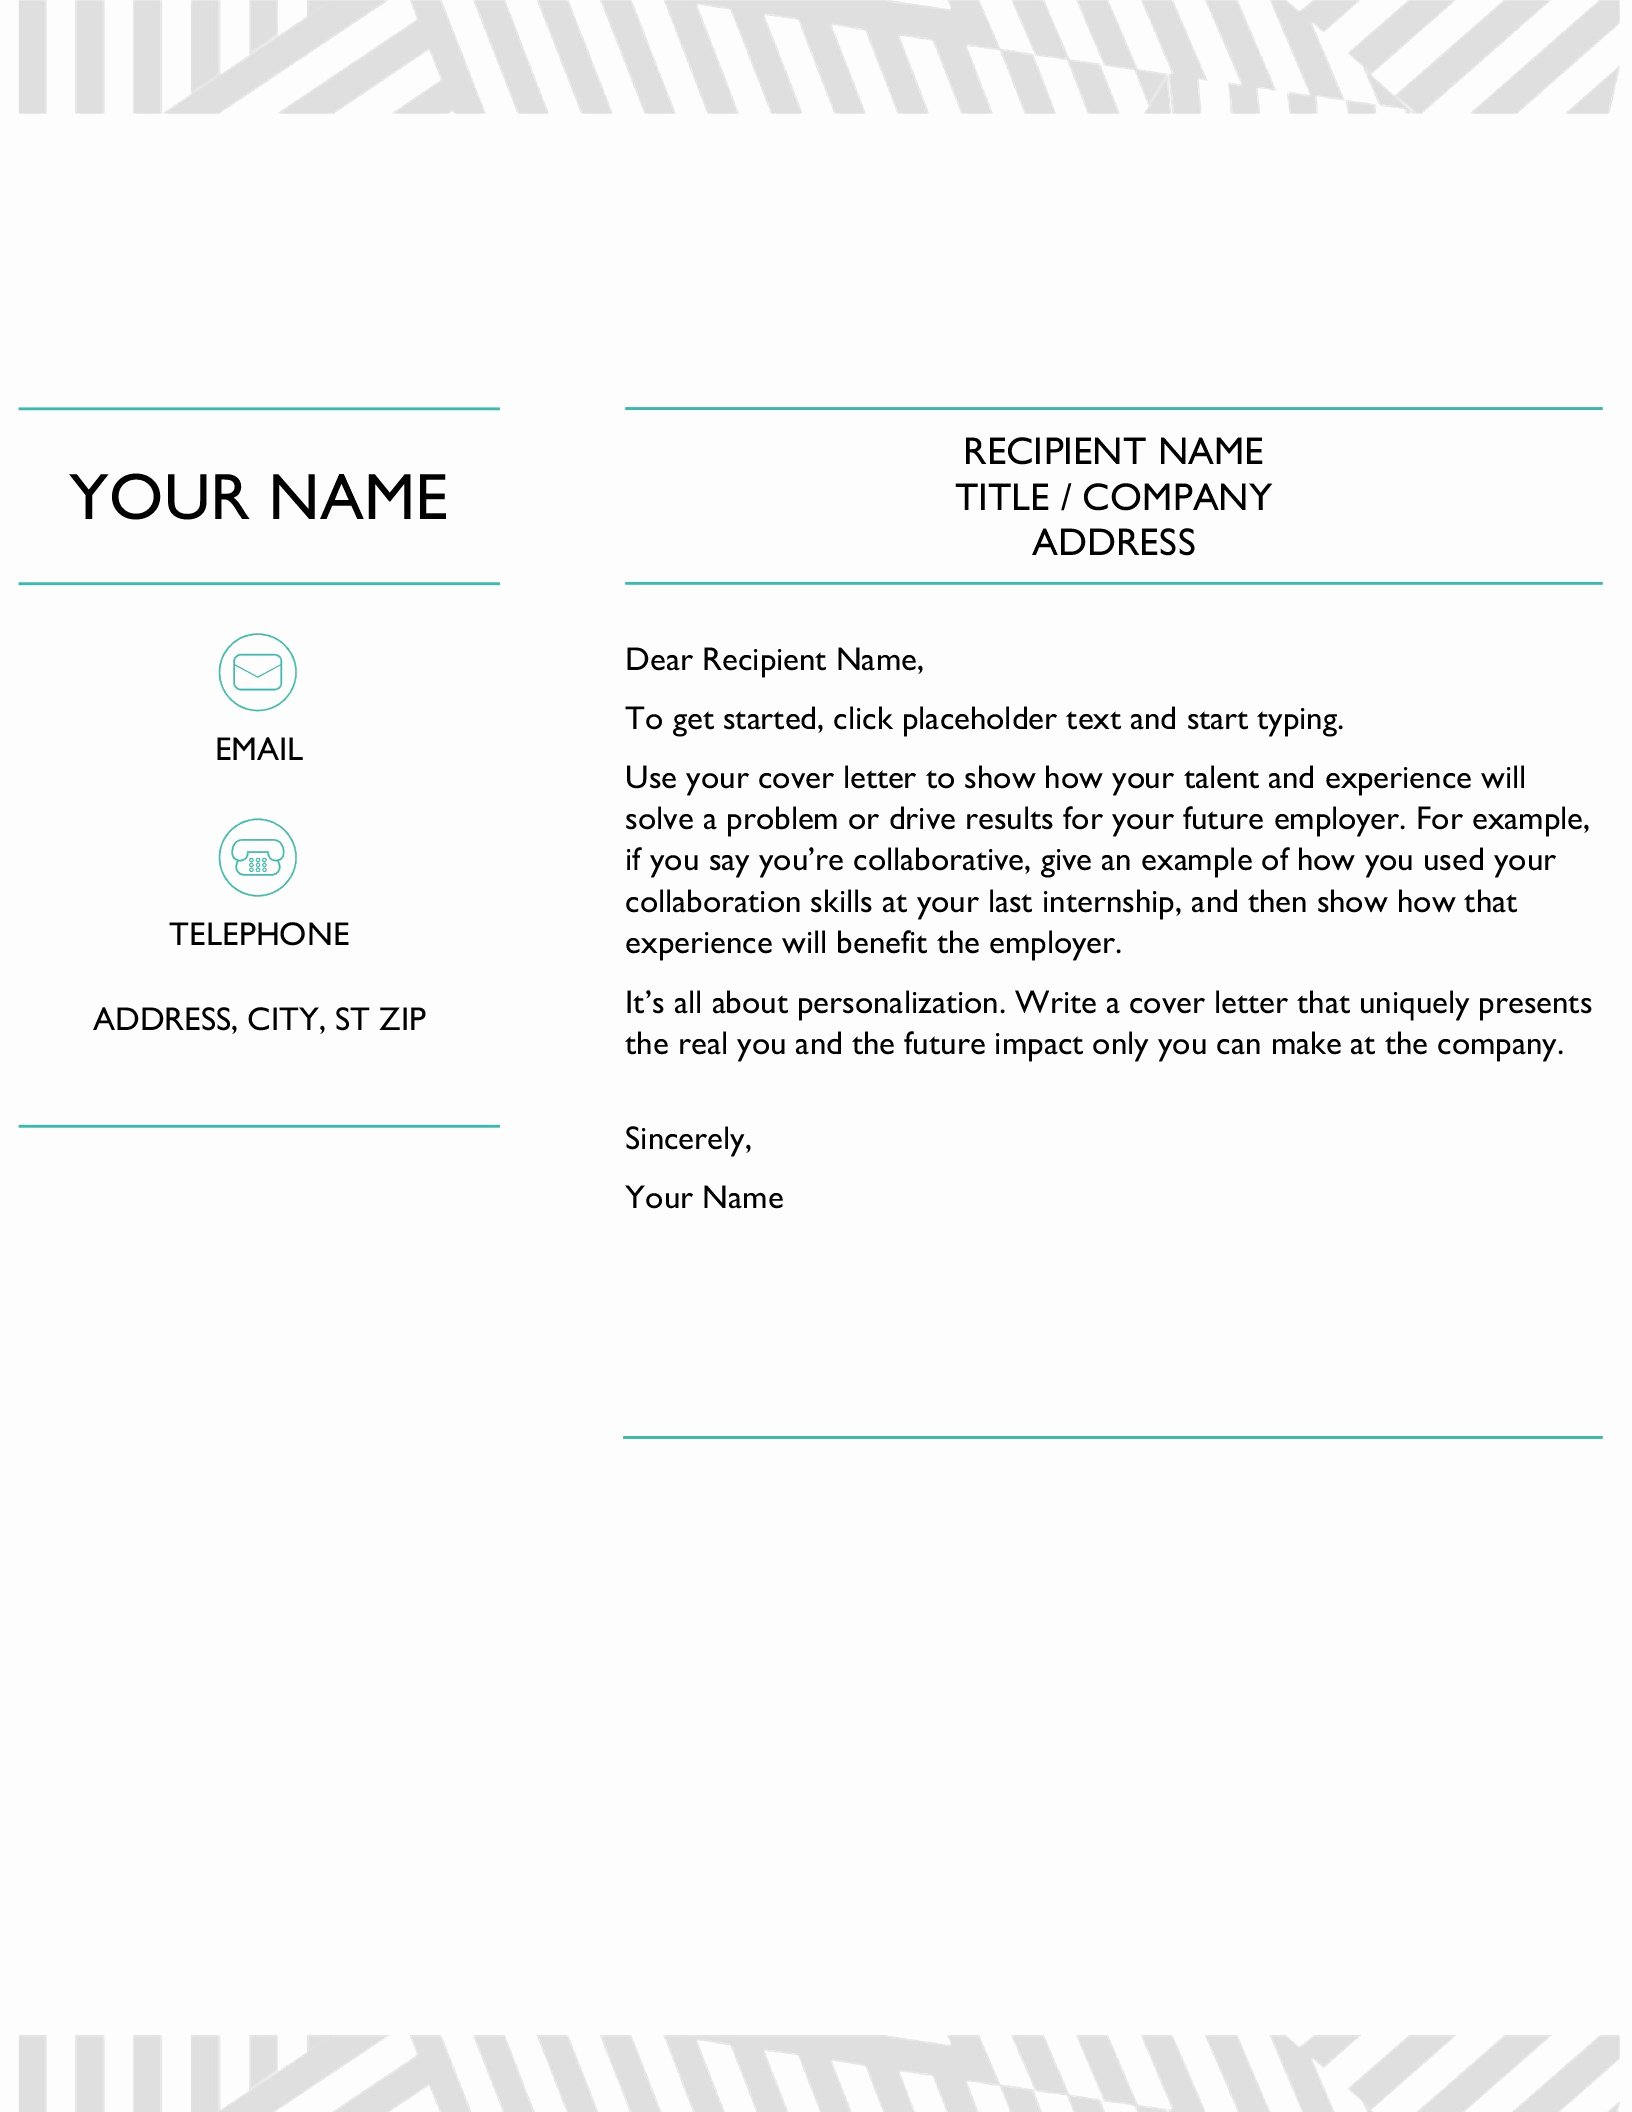 Moo Resume Templates Awesome Resumes and Cover Letters Fice